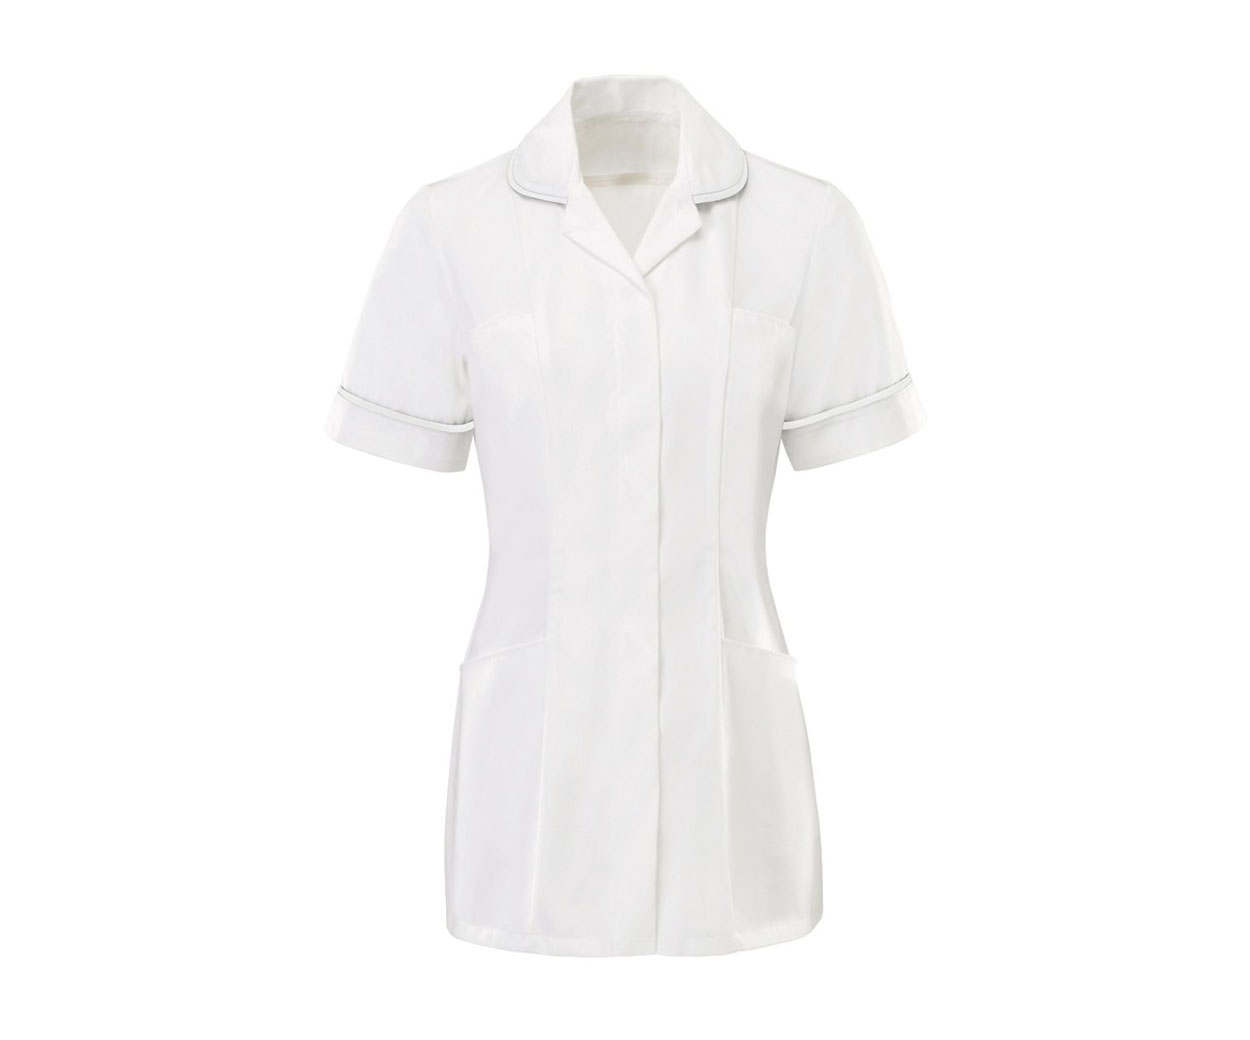 White zip fastening ladies tunic with white piping